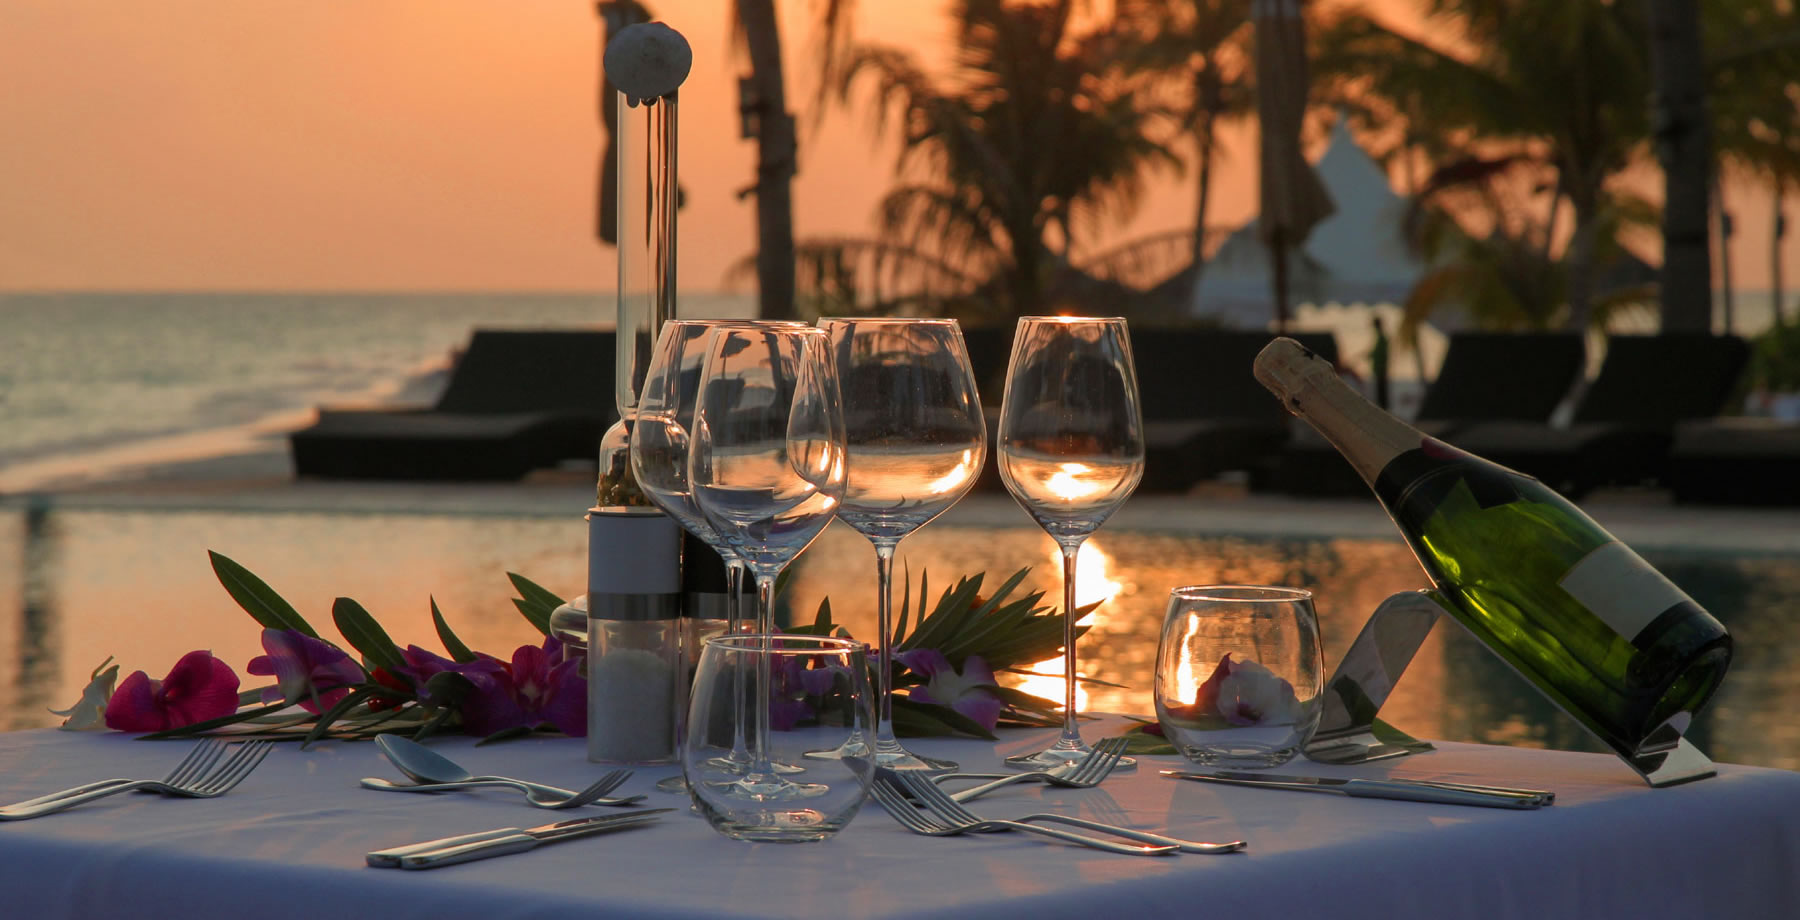 Romantic-dinner-table-2700-opt